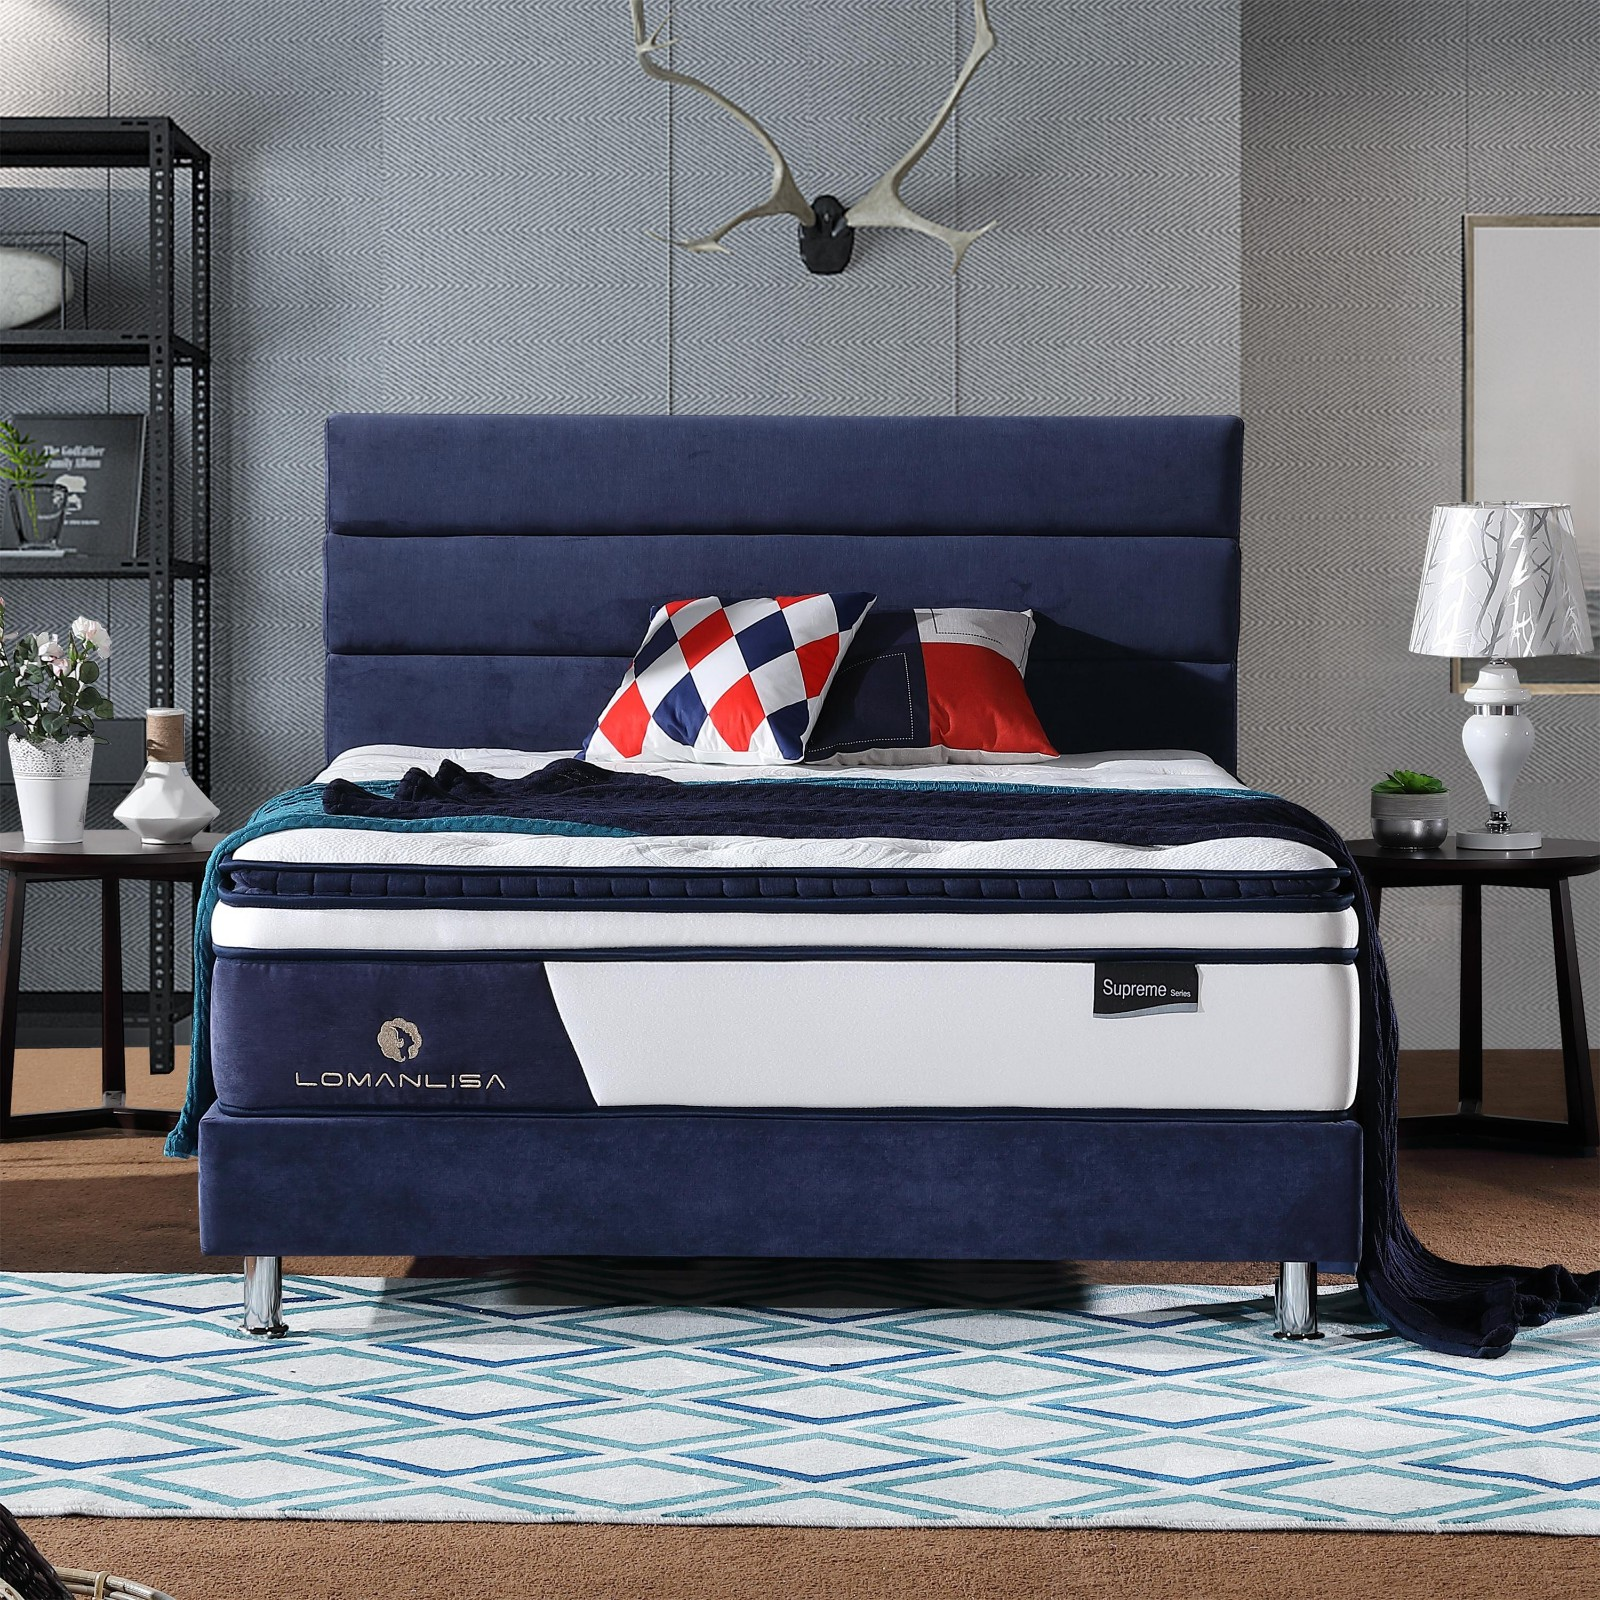 JLH comfortable cradle mattress-10